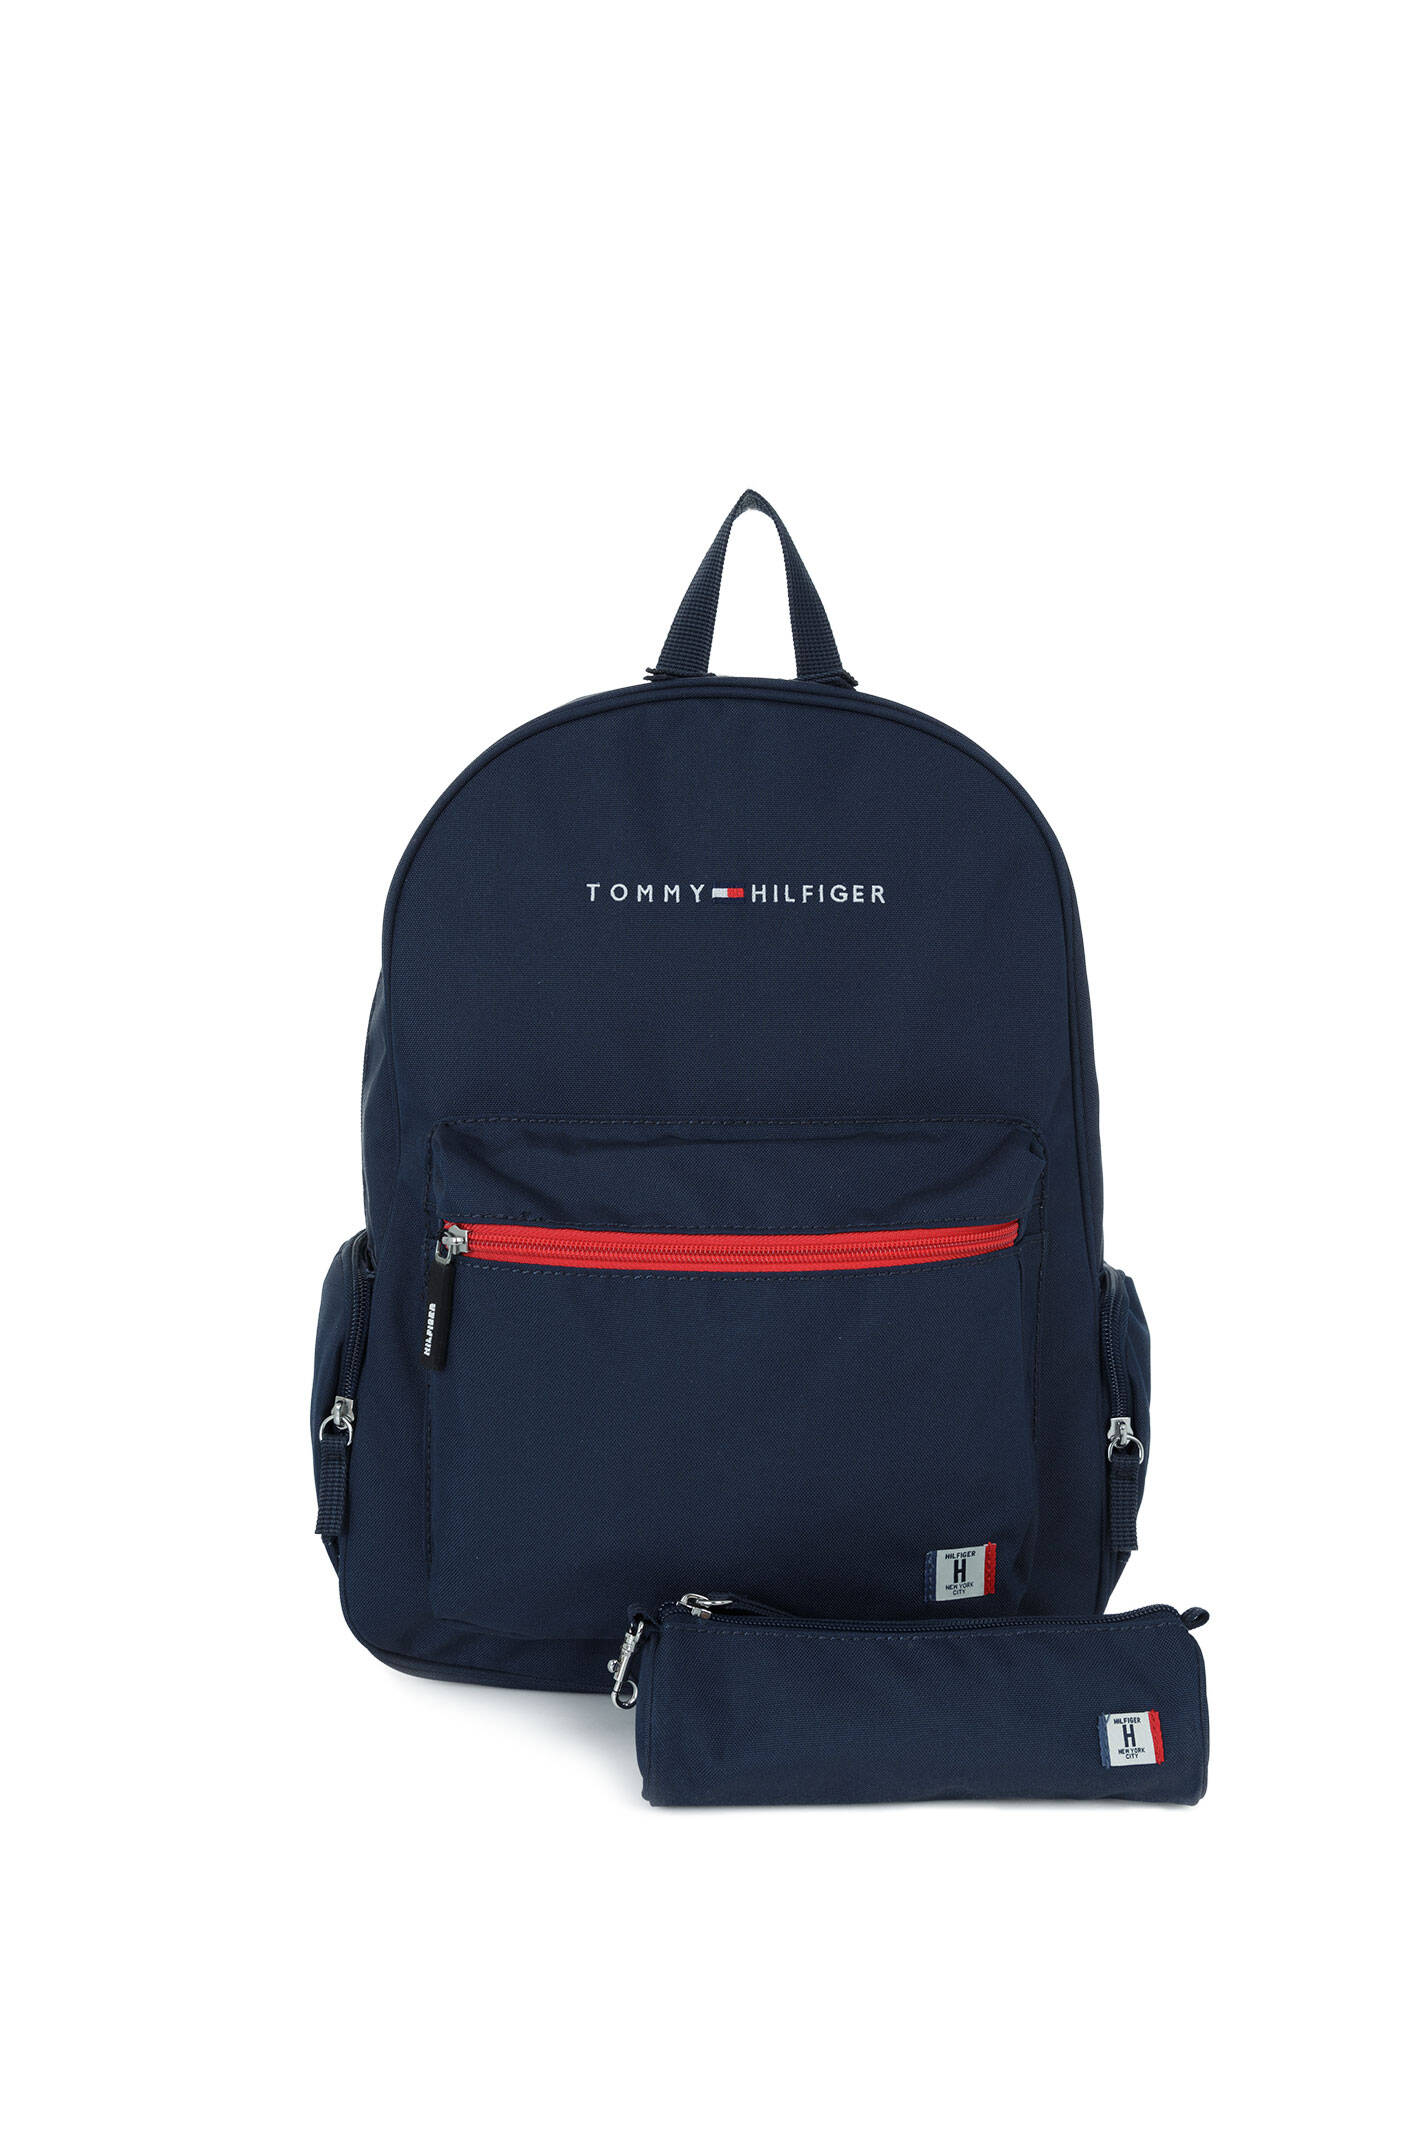 Ralph Lauren is synonymous with impeccable design and quality of mid-range to luxury American sportswear. The brand's iconic Pony logo is on all ranges of .